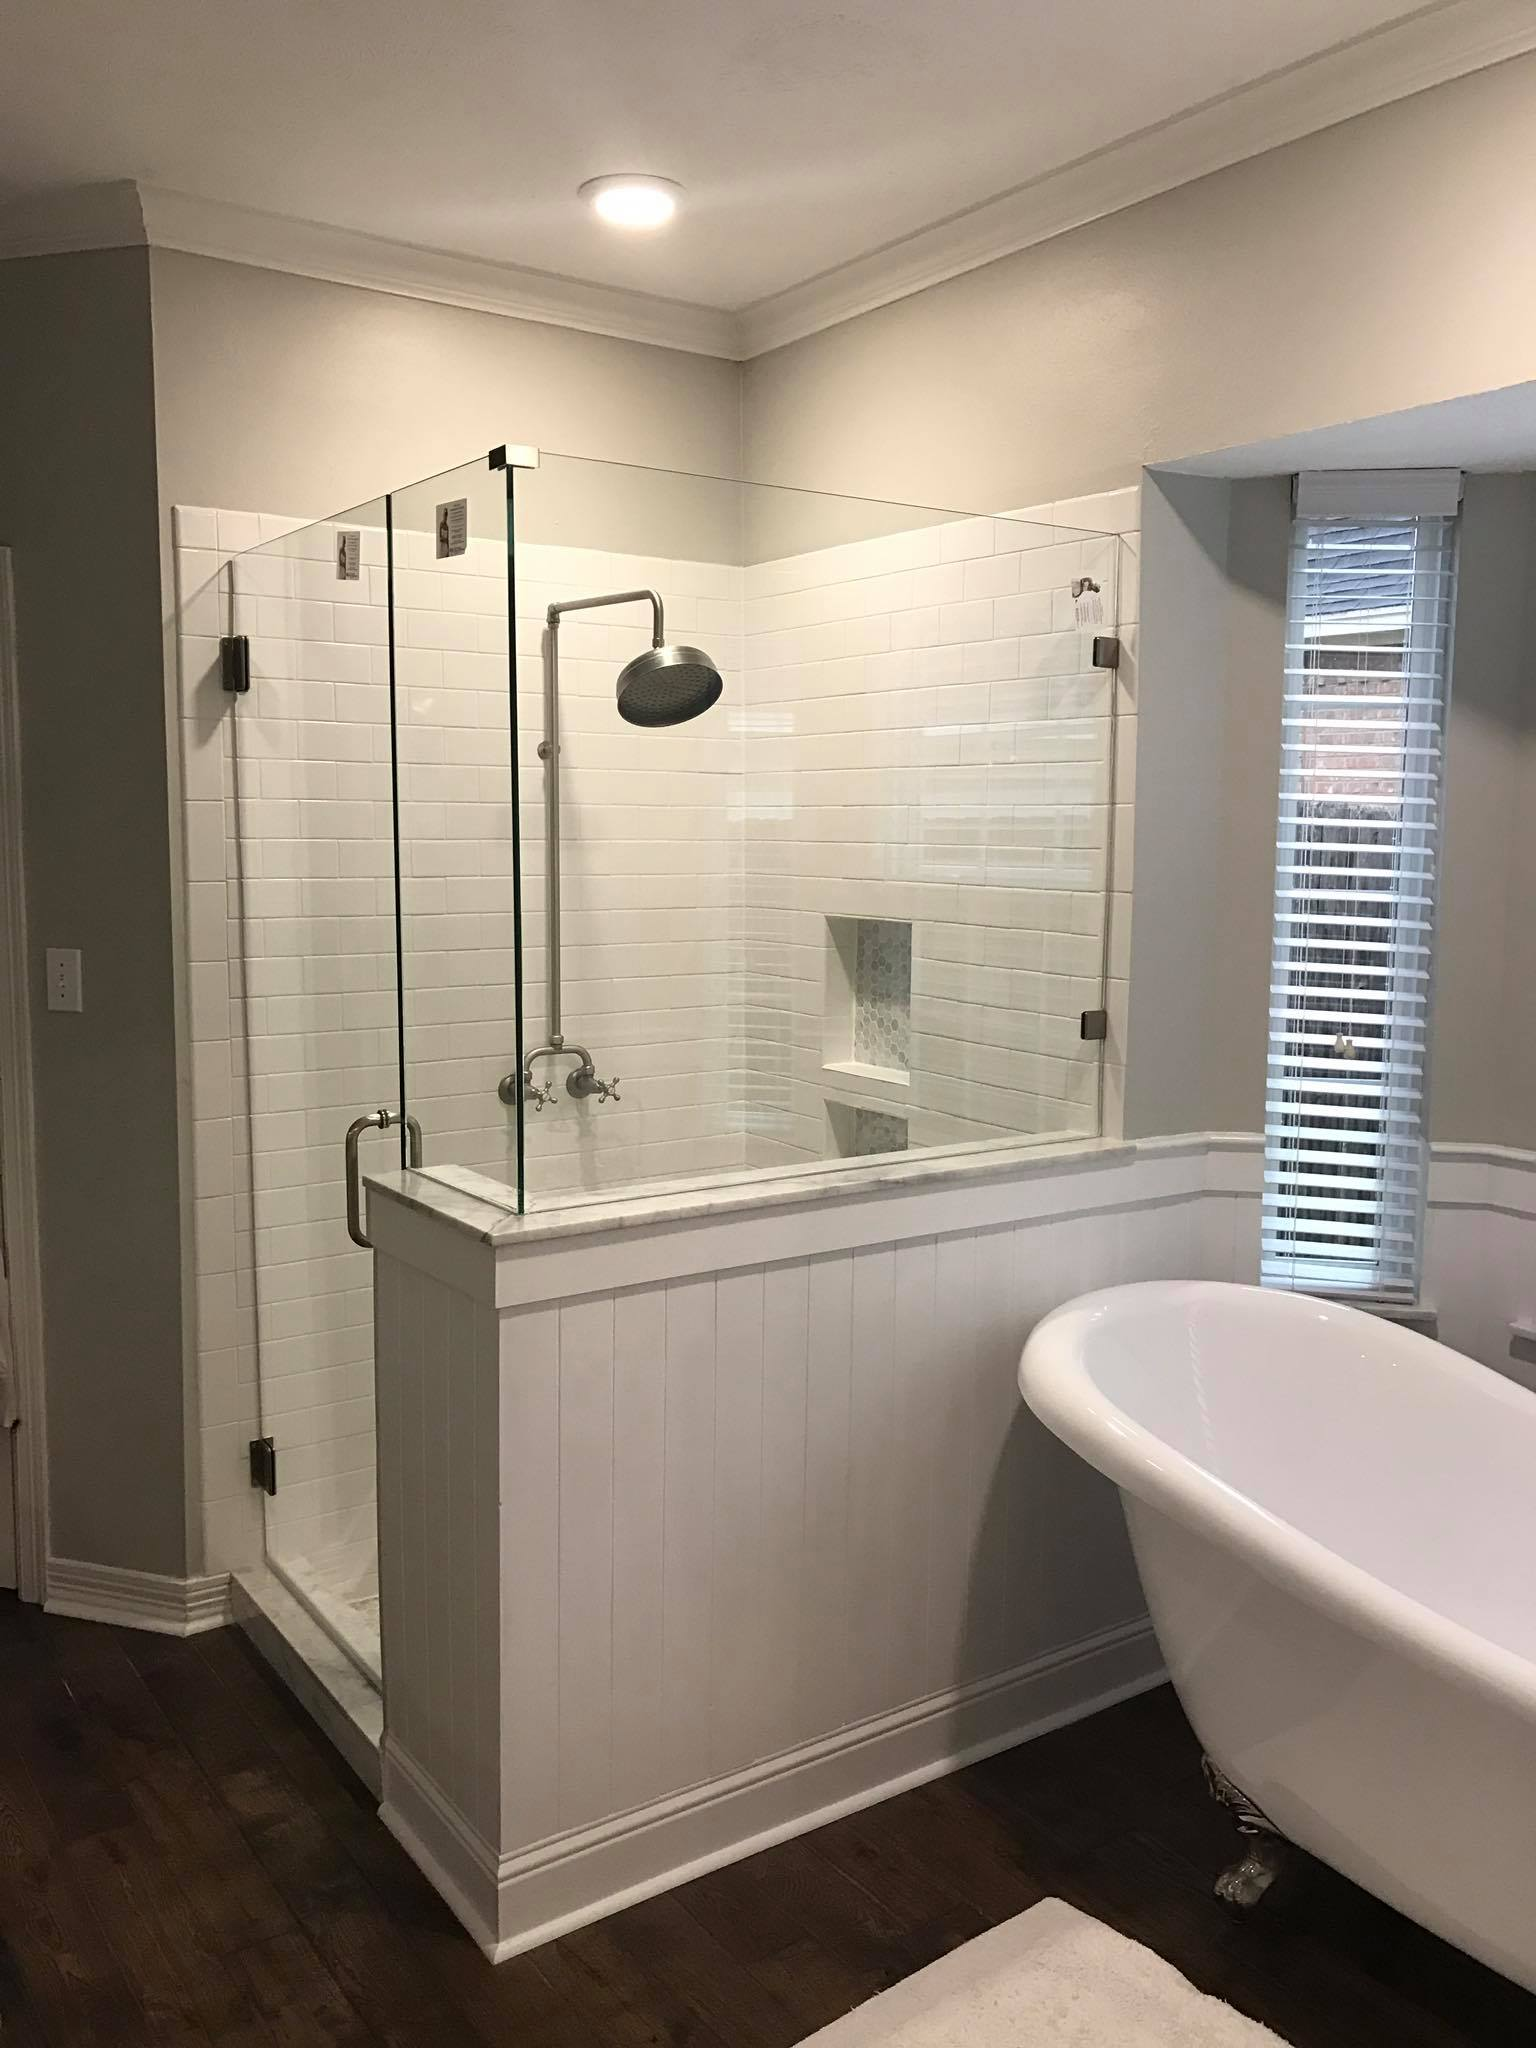 The Glass Guys Glass Services Katy Tx